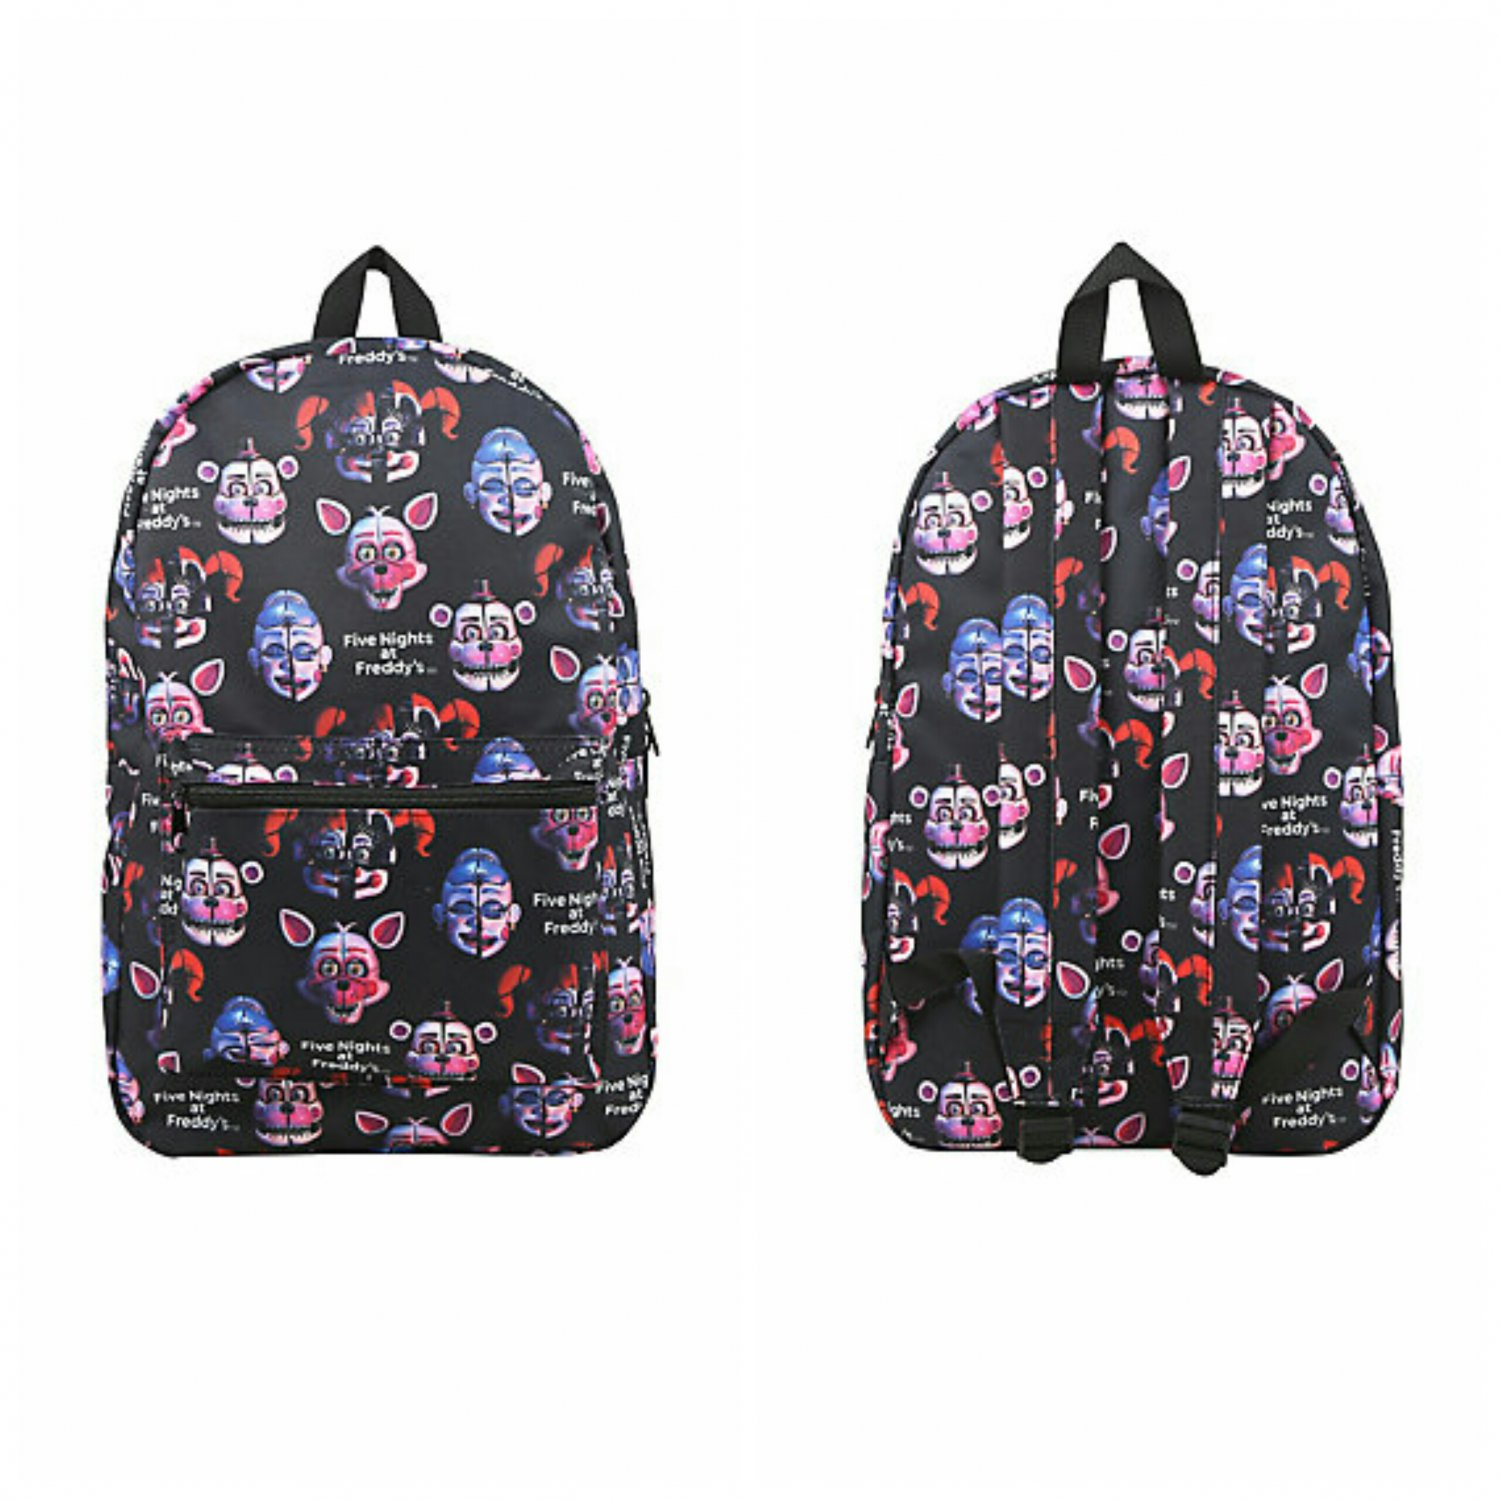 Five Nights At Freddy's Sister Location Print Backpack (Freddy & Foxy, Ballora, & Circus Baby)